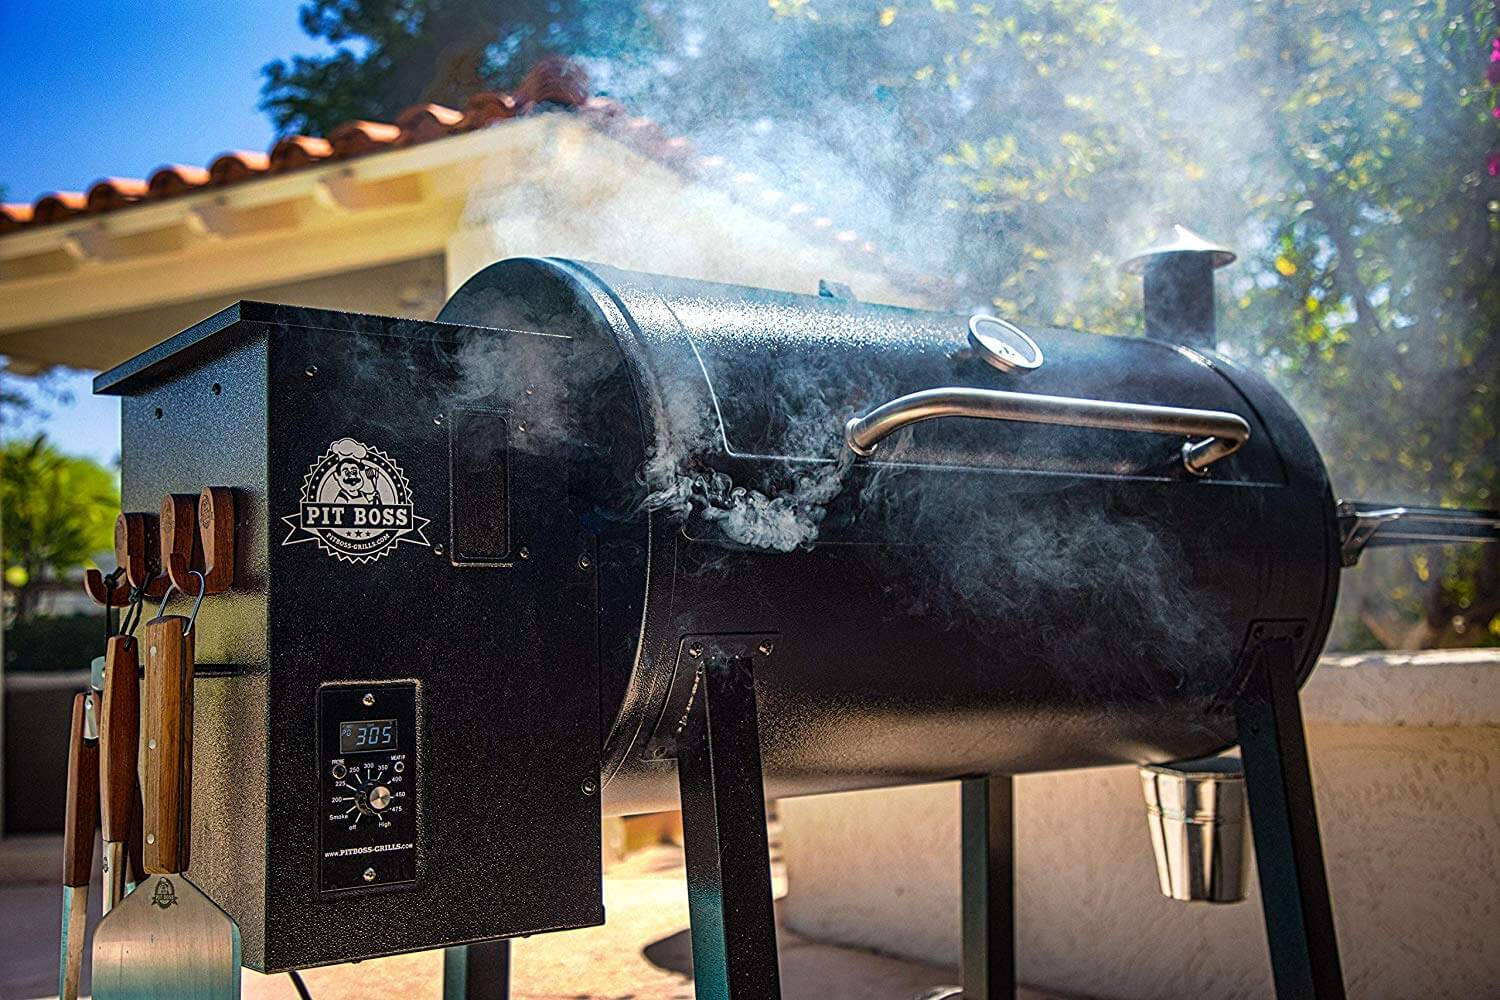 Pit boss grill